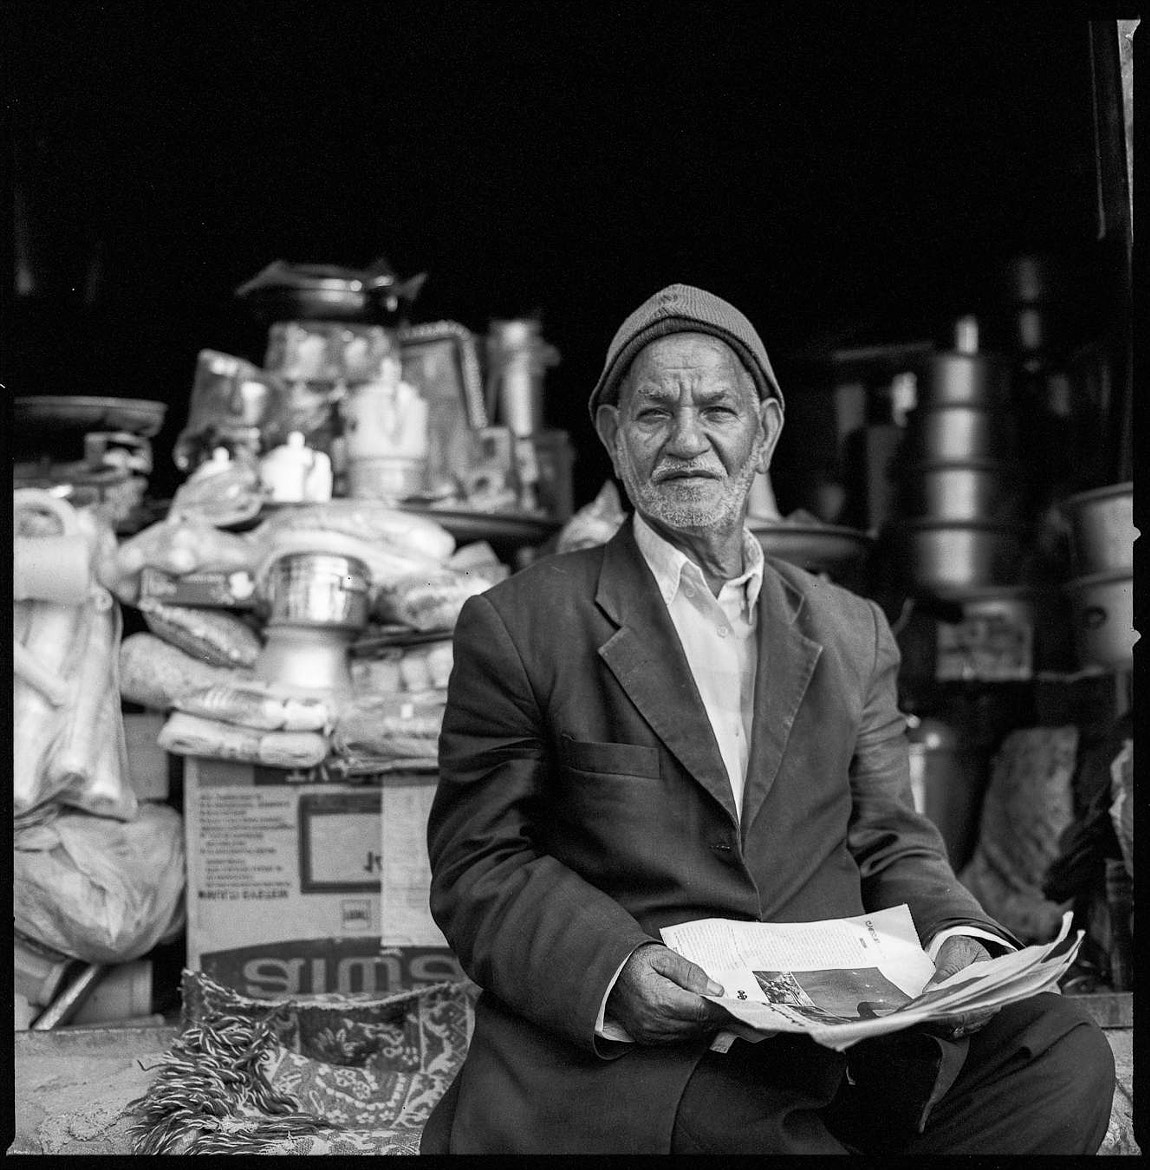 Photograph Shop Owner, Yazd, Iran by Chiaro Scurist on 500px